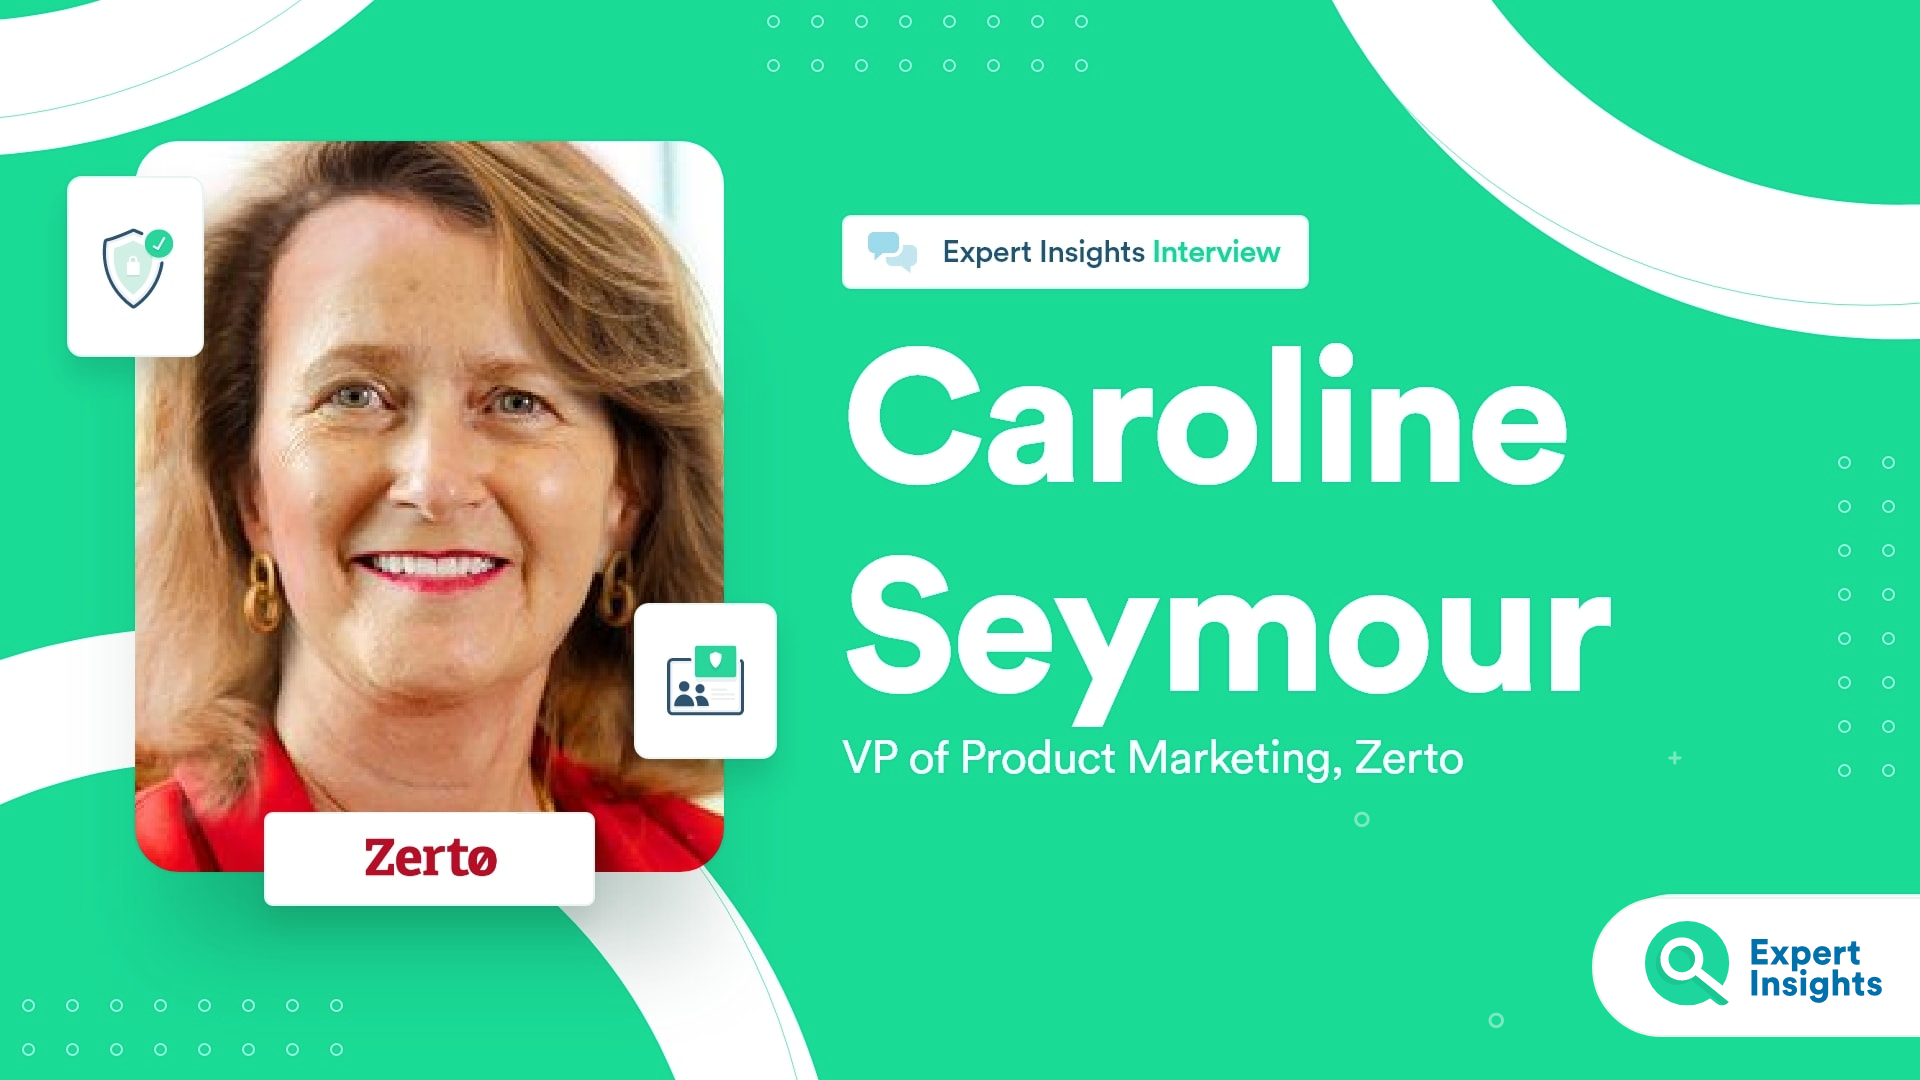 Expert Insights Interview With Caroline Seymour Of Zerto